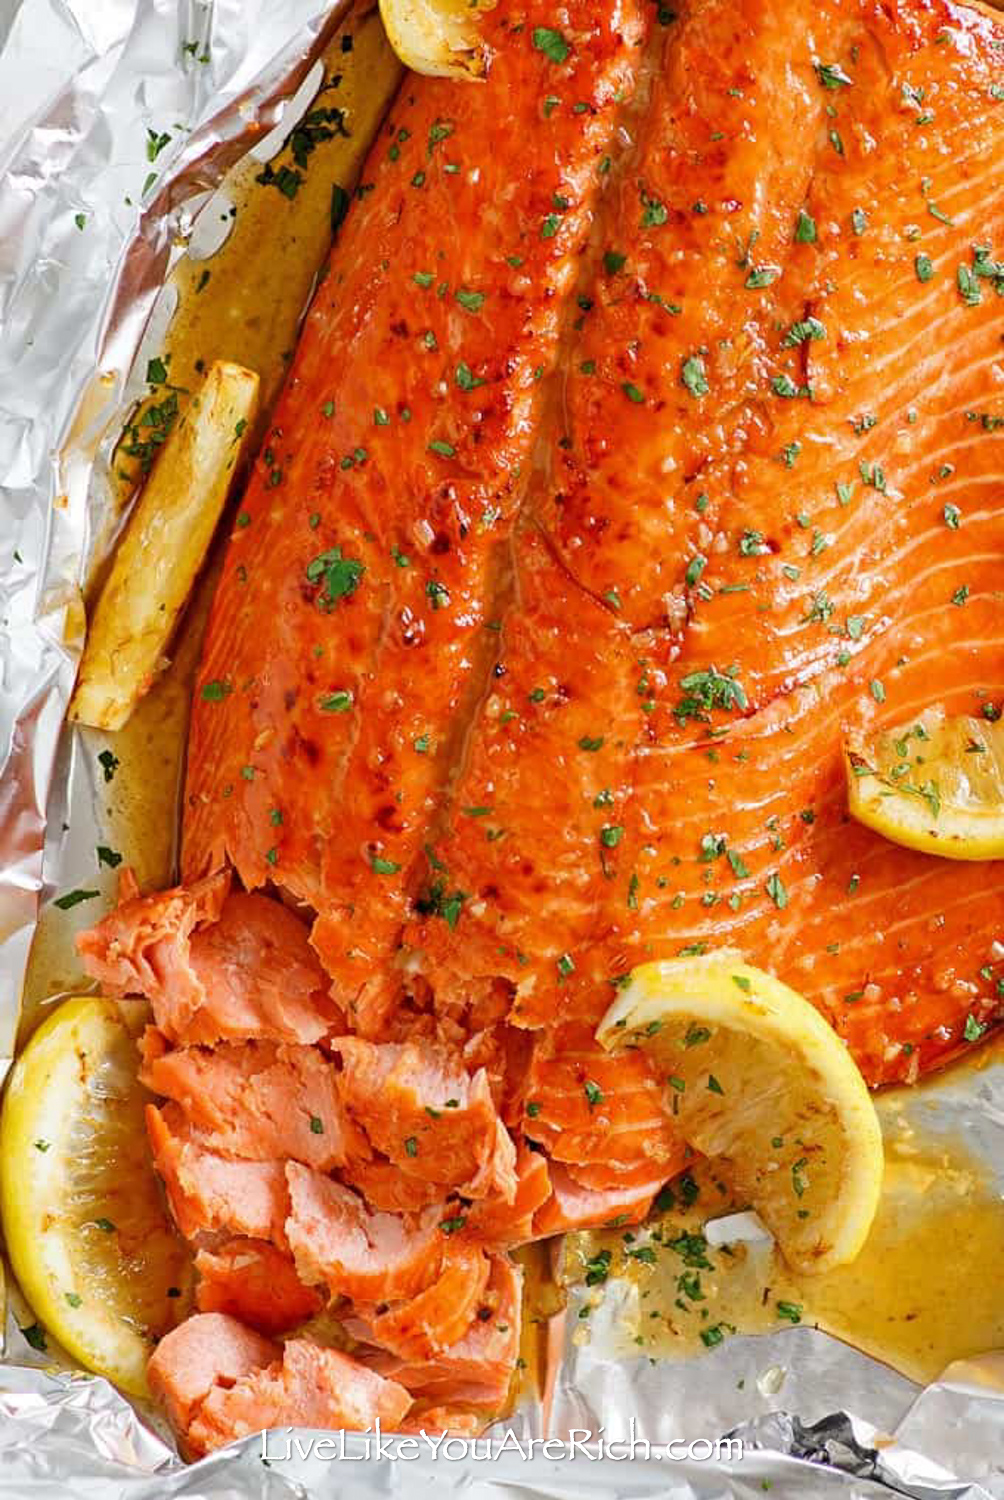 This Brown Sugar Lemon-Garlic Smoked Salmon recipe tasty and delicious